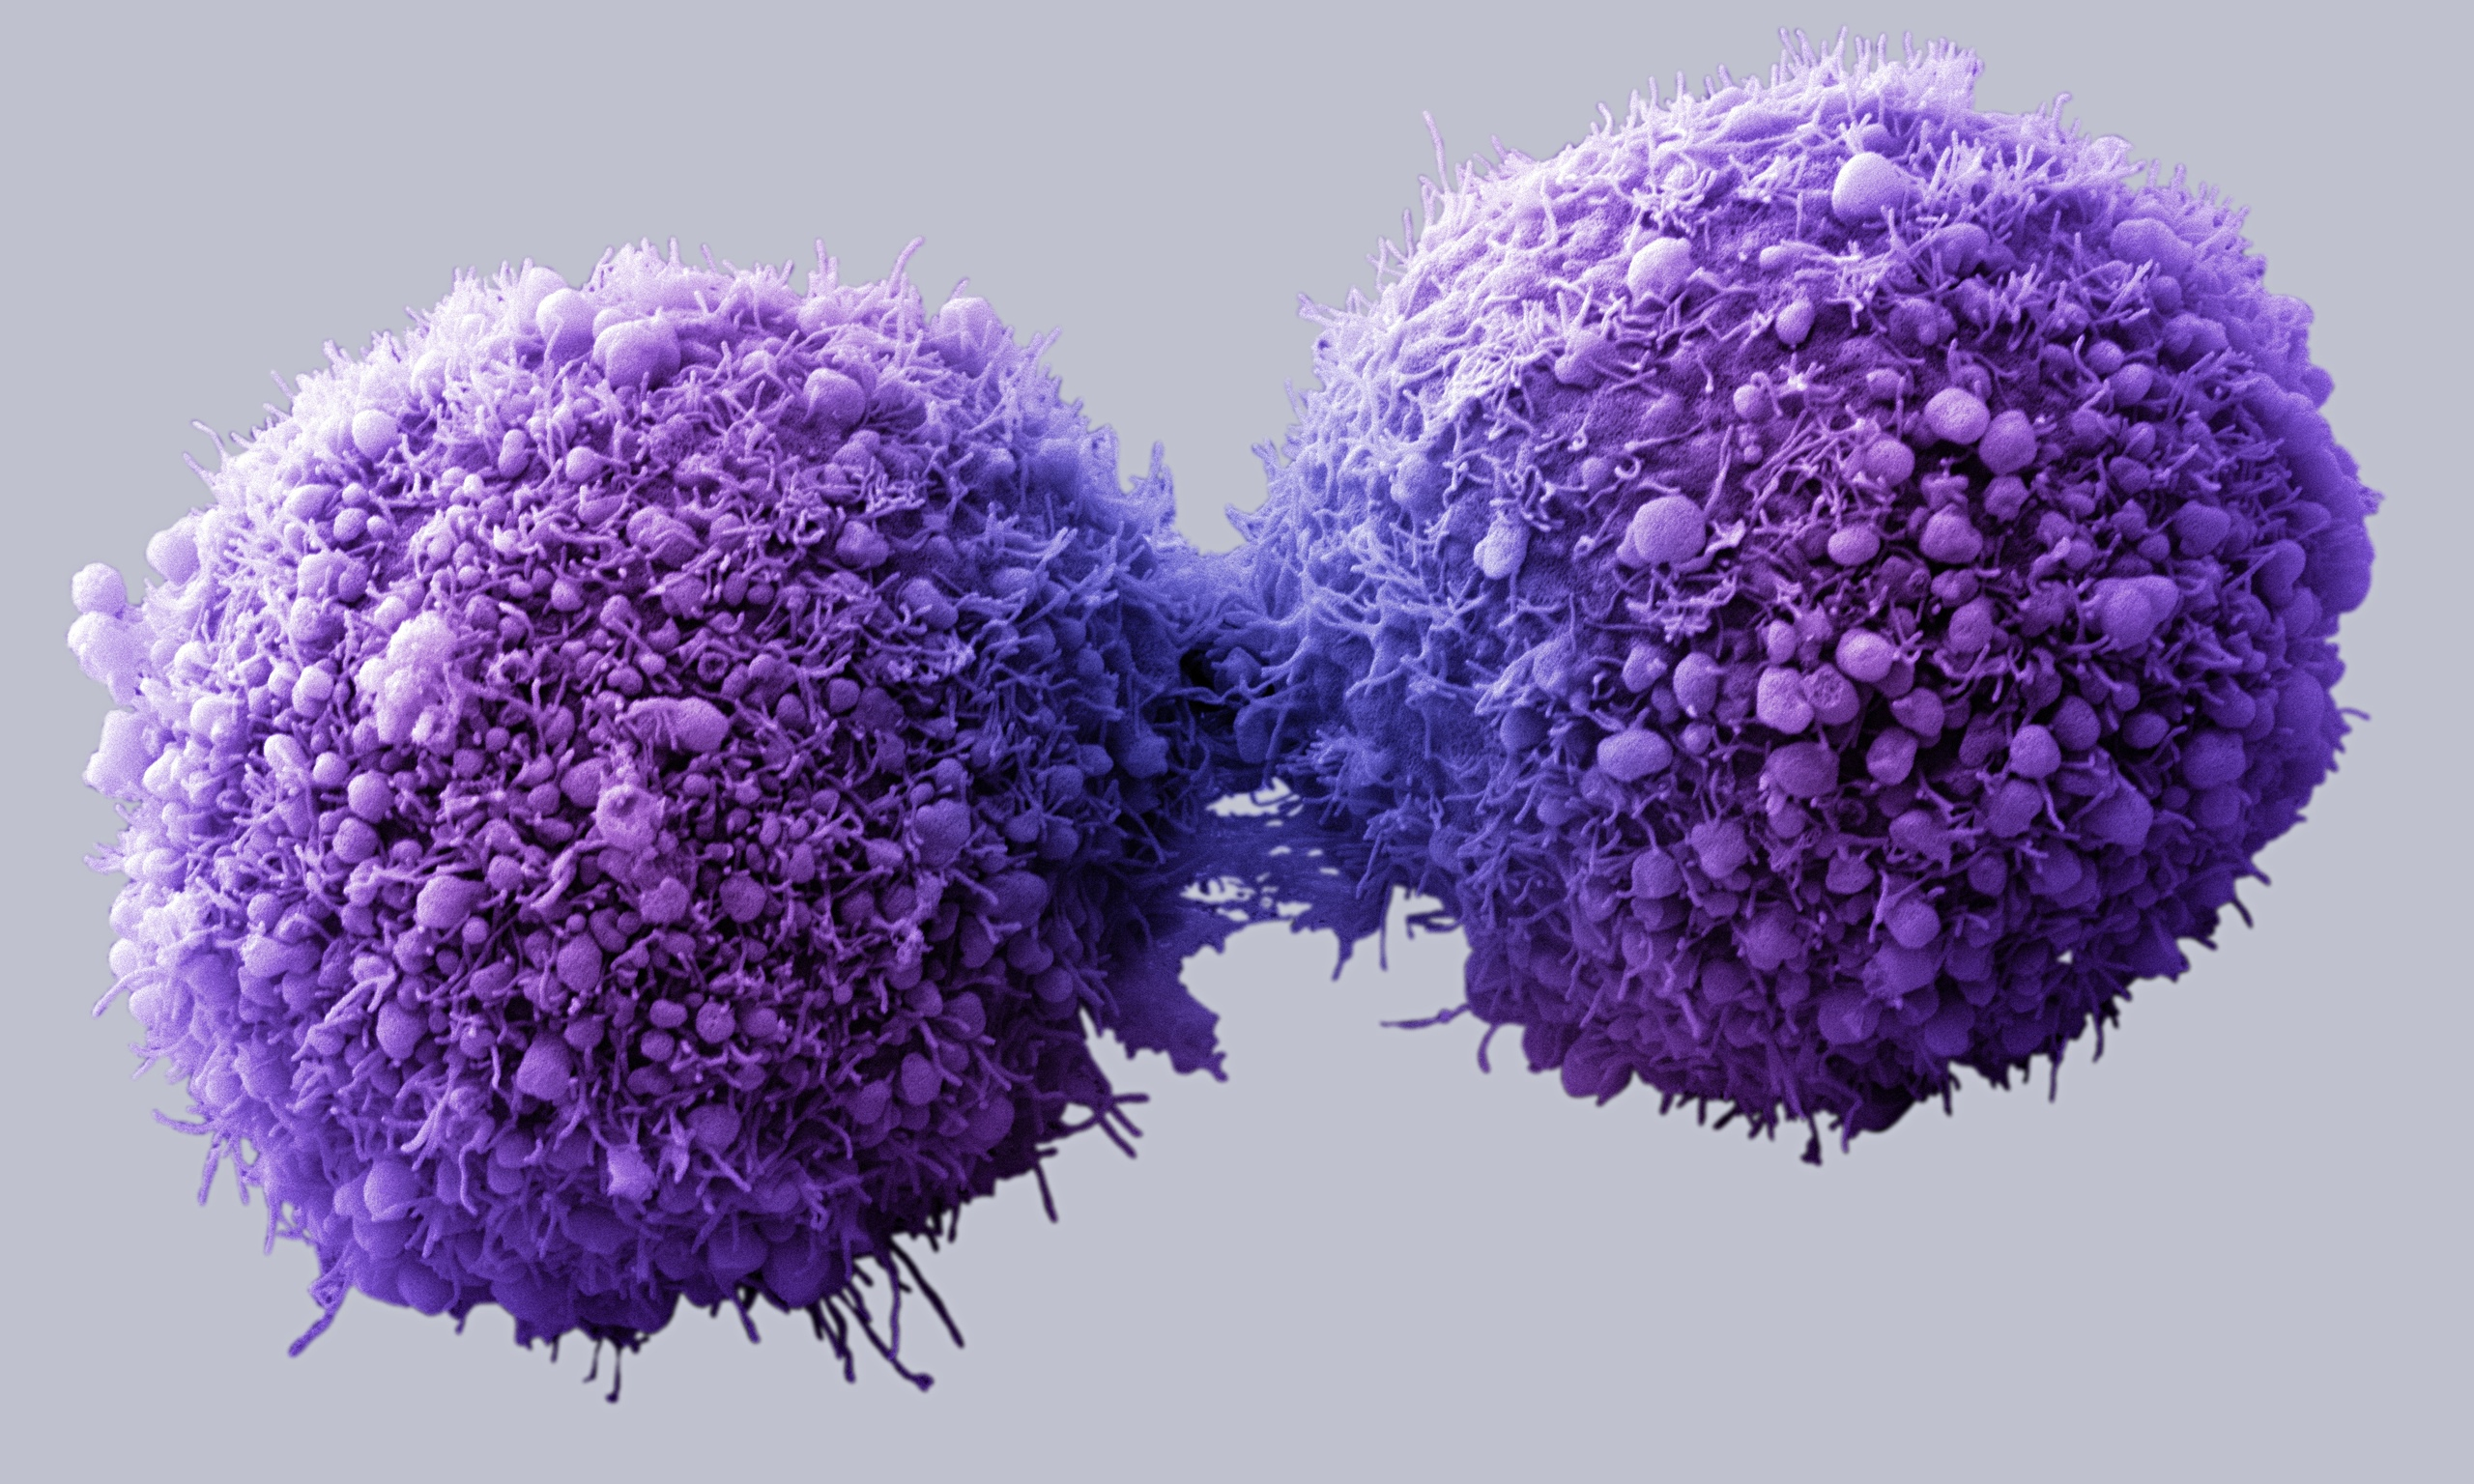 Image of pancreatic cancer cells